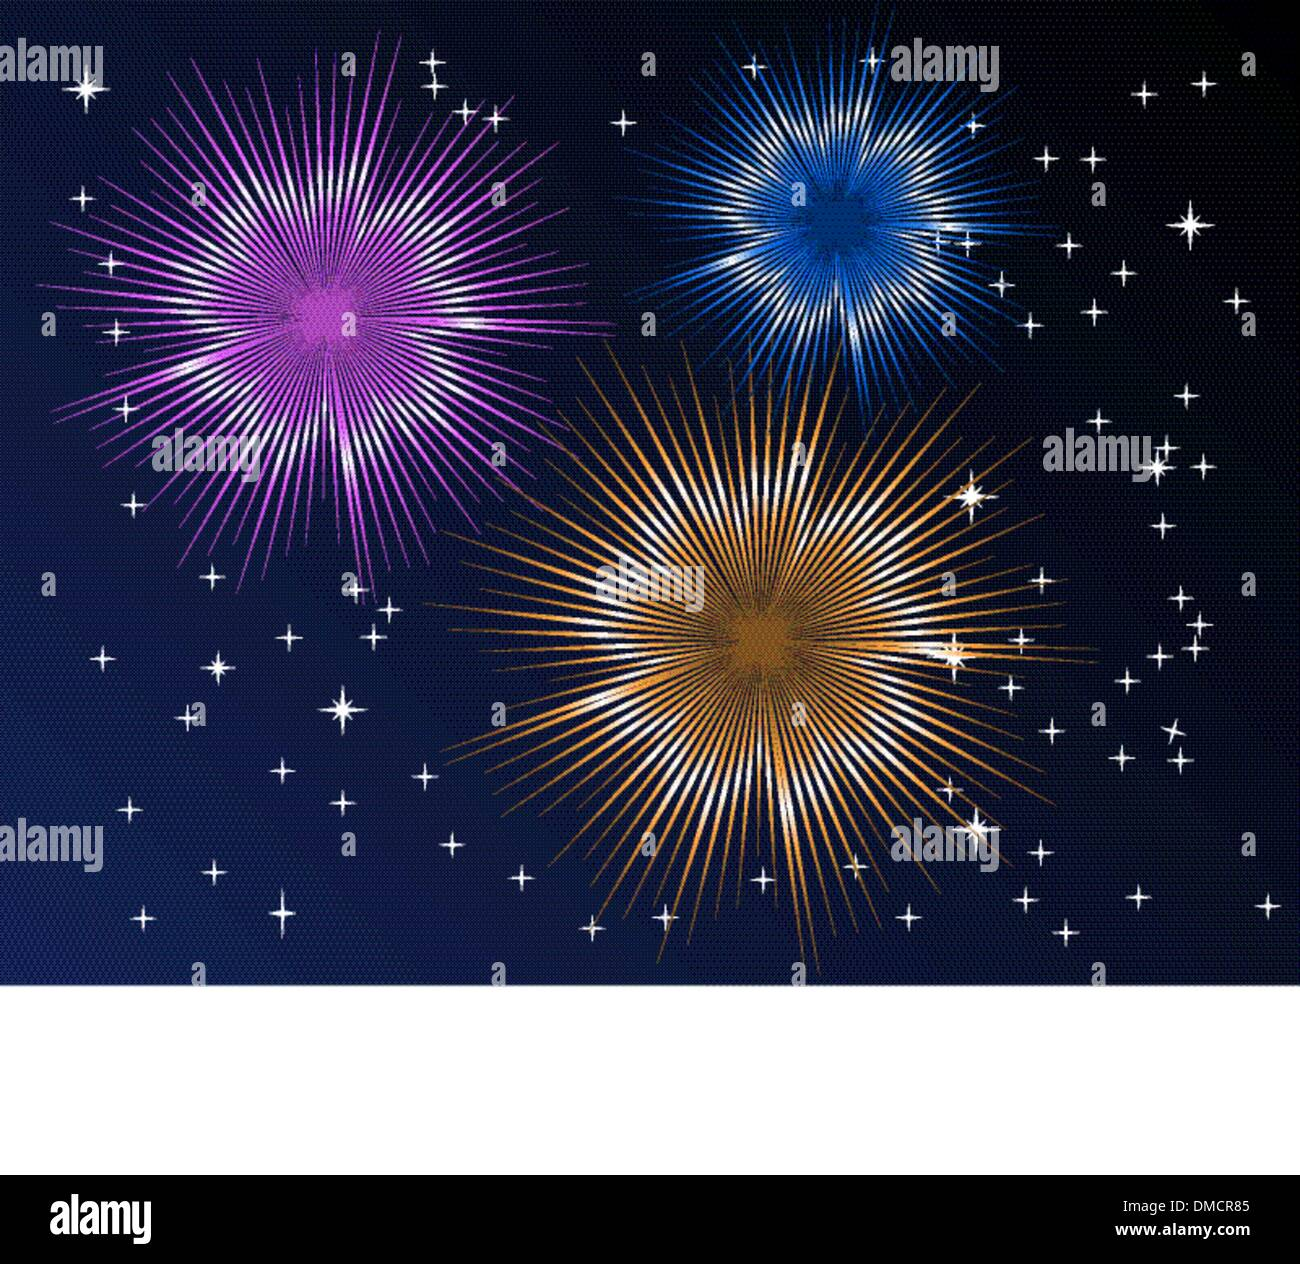 Fireworks display with multiple bursts - Stock Image